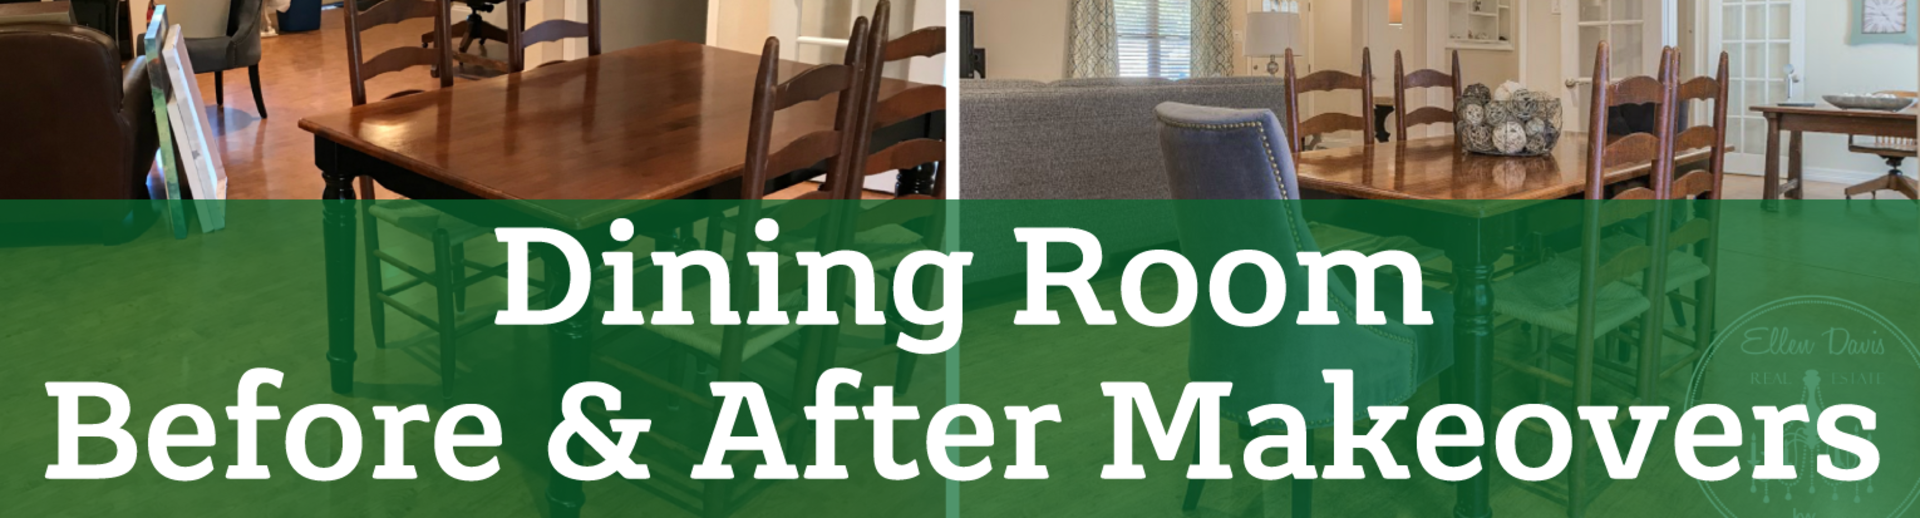 Dining Room Before & After Makeovers